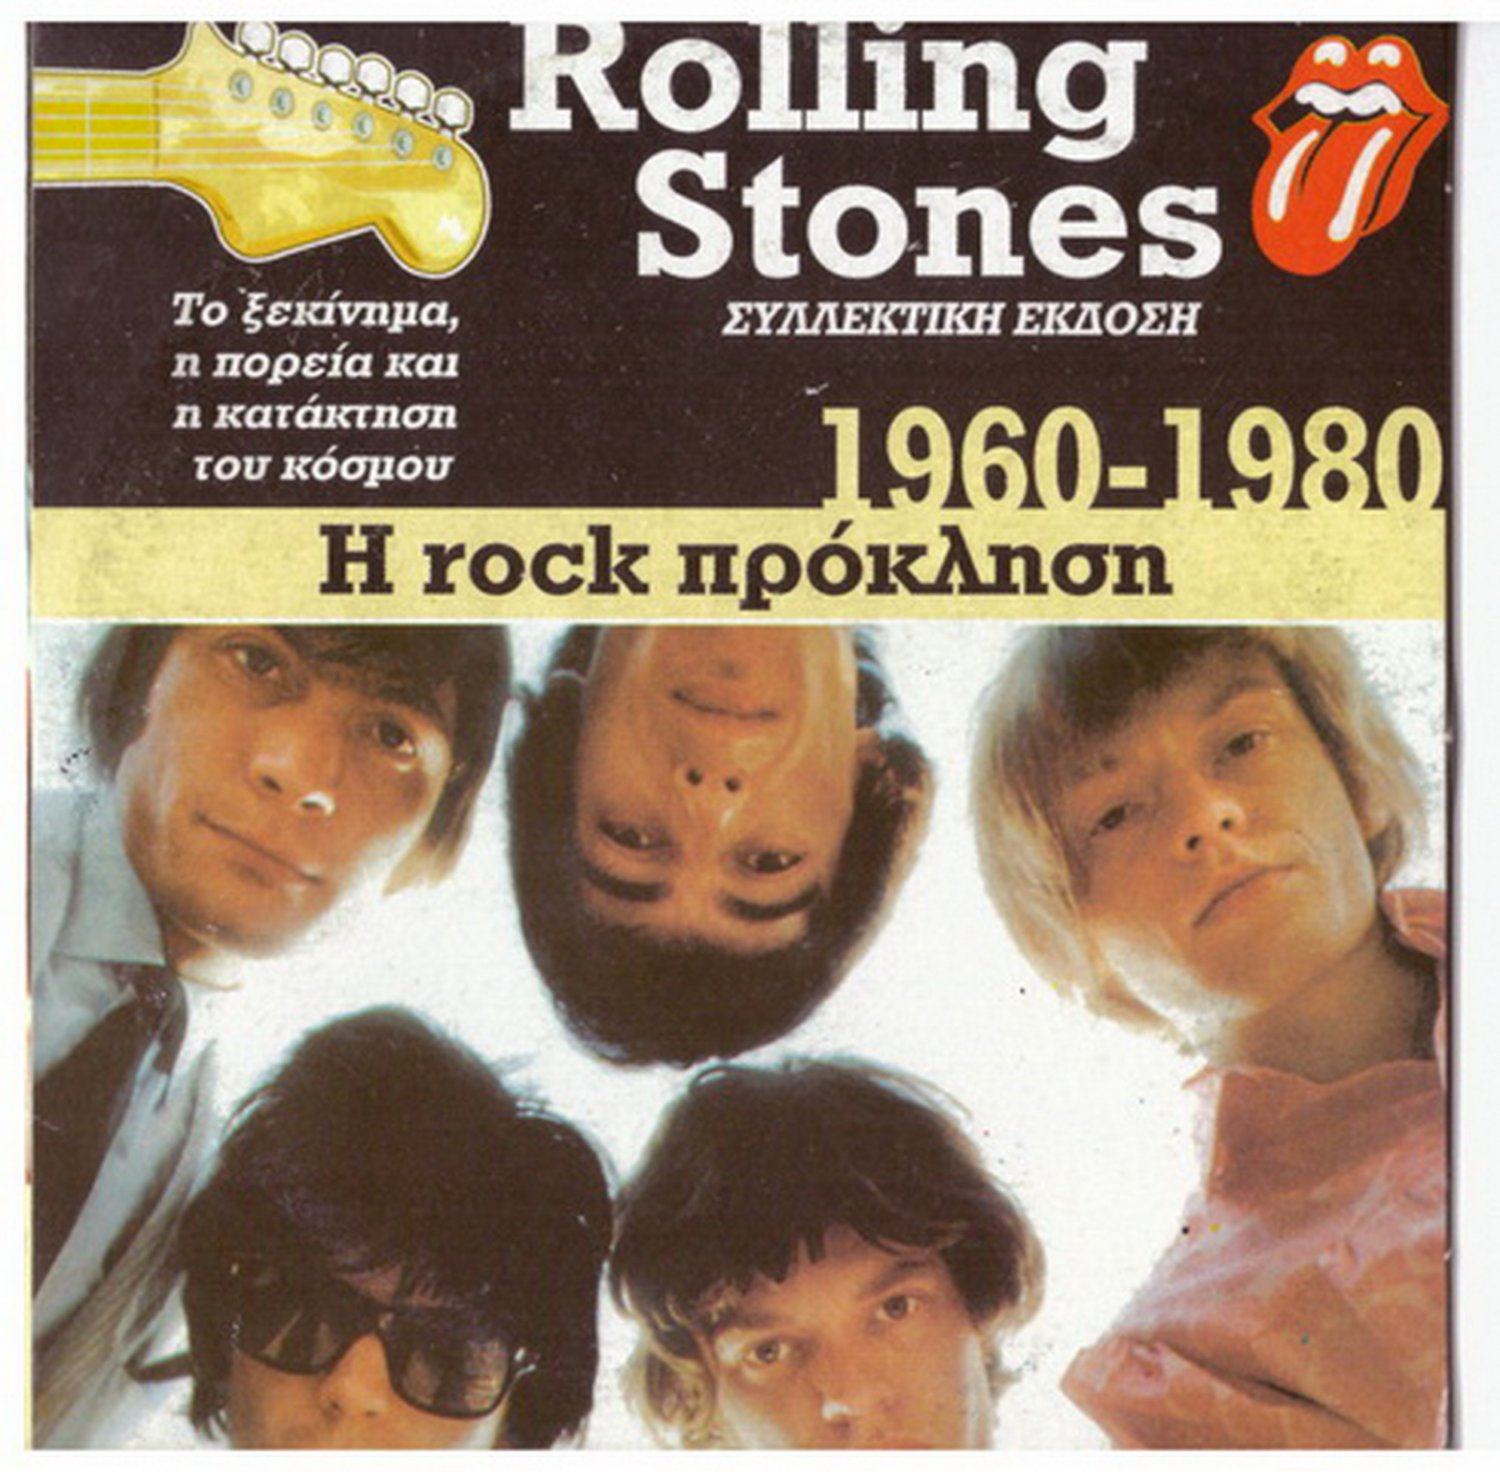 ROLLING STONES 1960-1980 documentary PAL DVD